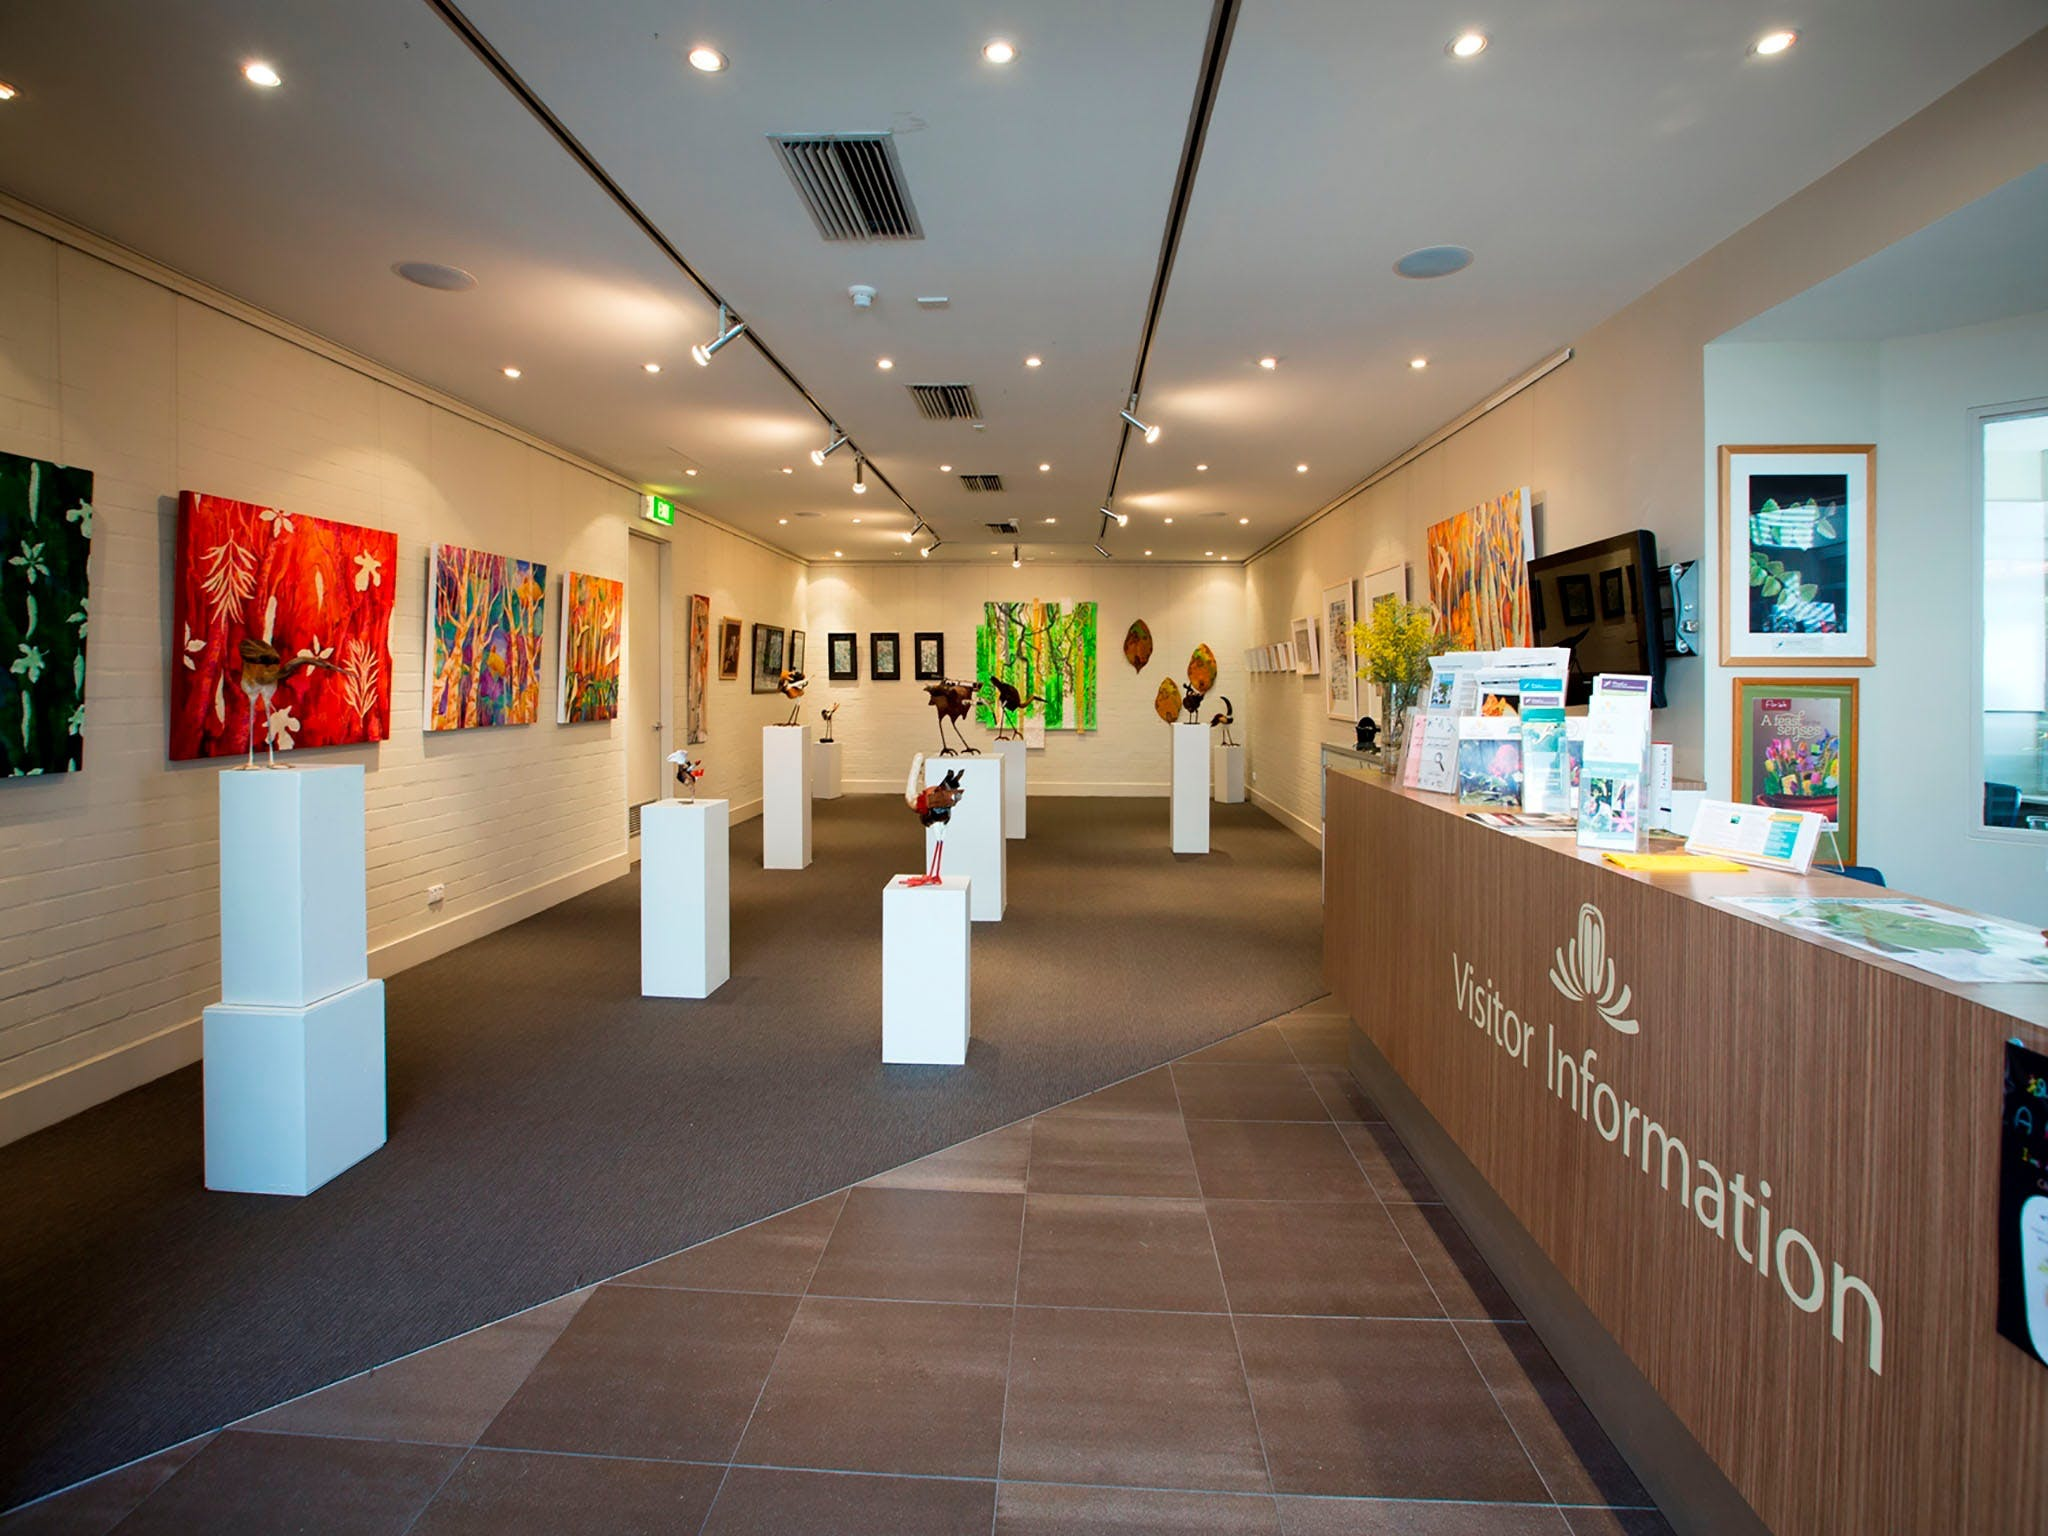 Australian National Botanic Gardens Visitor Centre Gallery - Phillip Island Accommodation